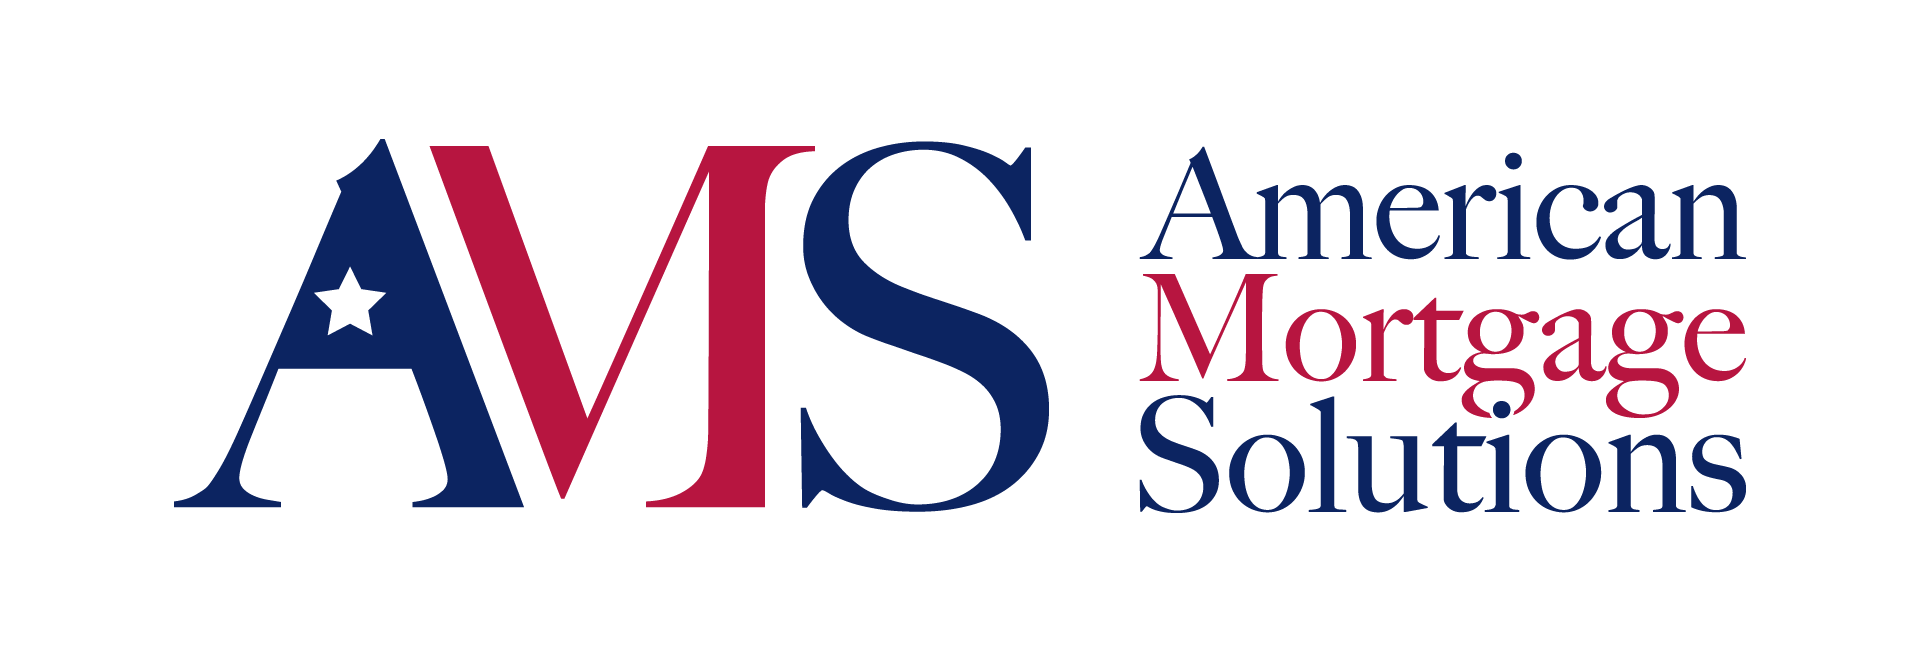 American Mortgager Solutions, Inc logo